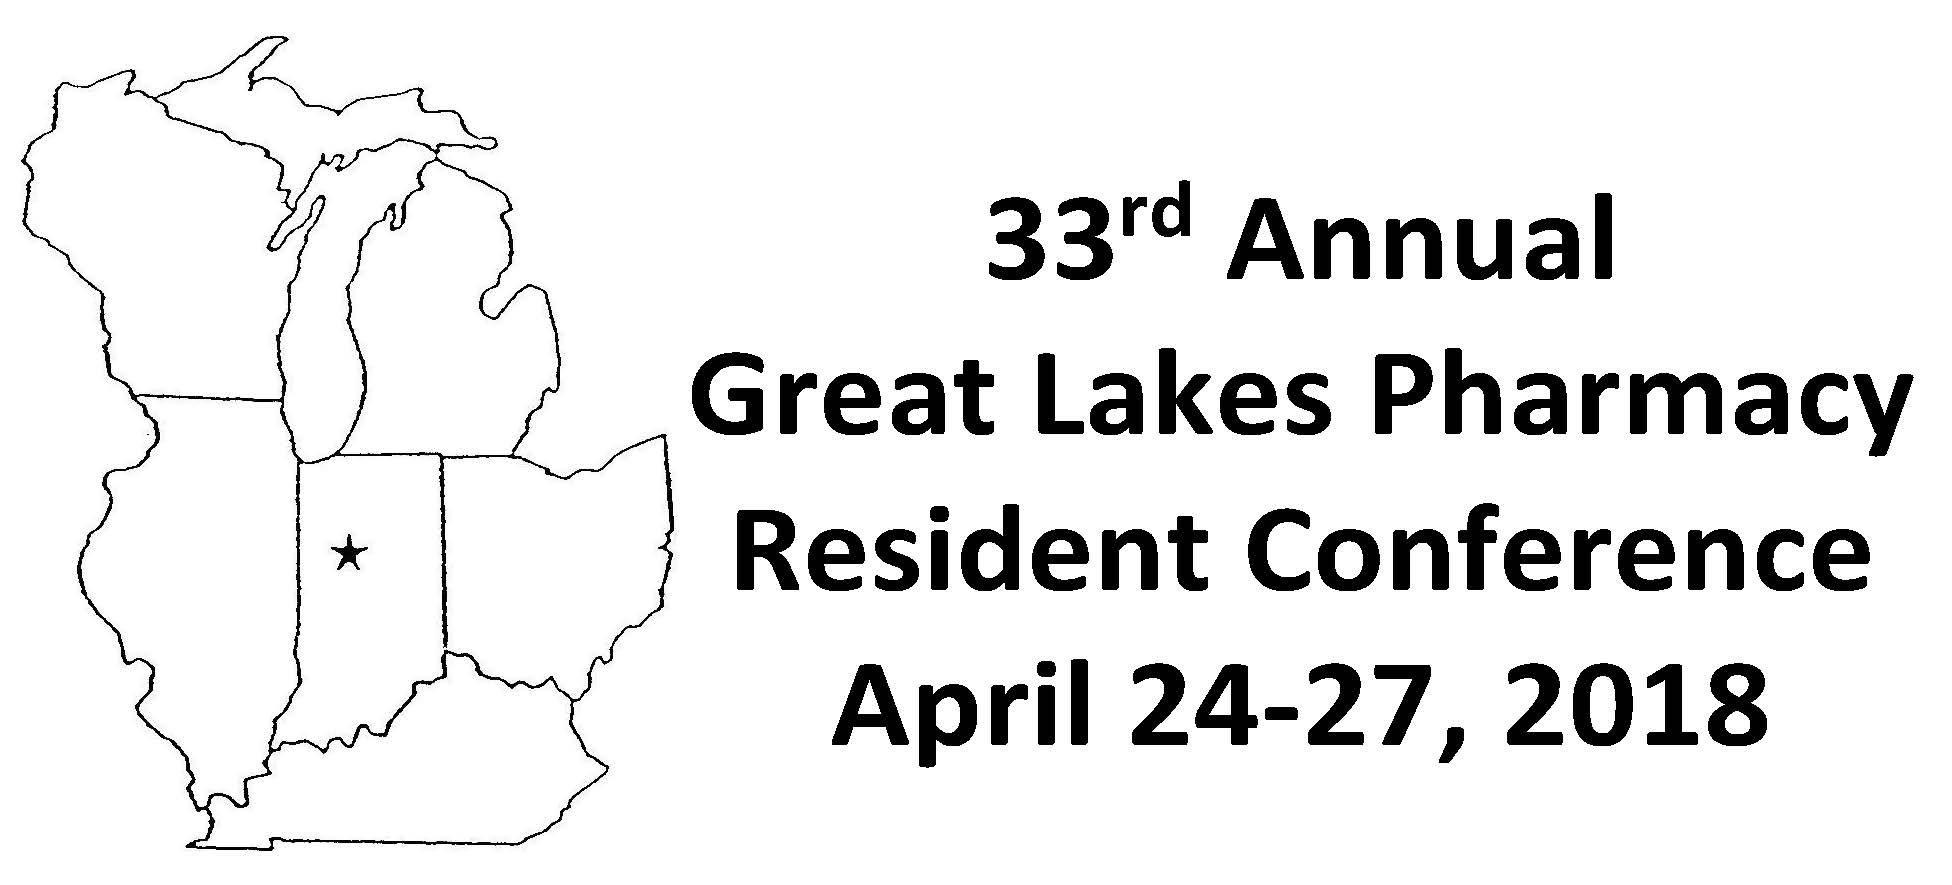 Great Lakes Pharmacy Resident Conference (2018)